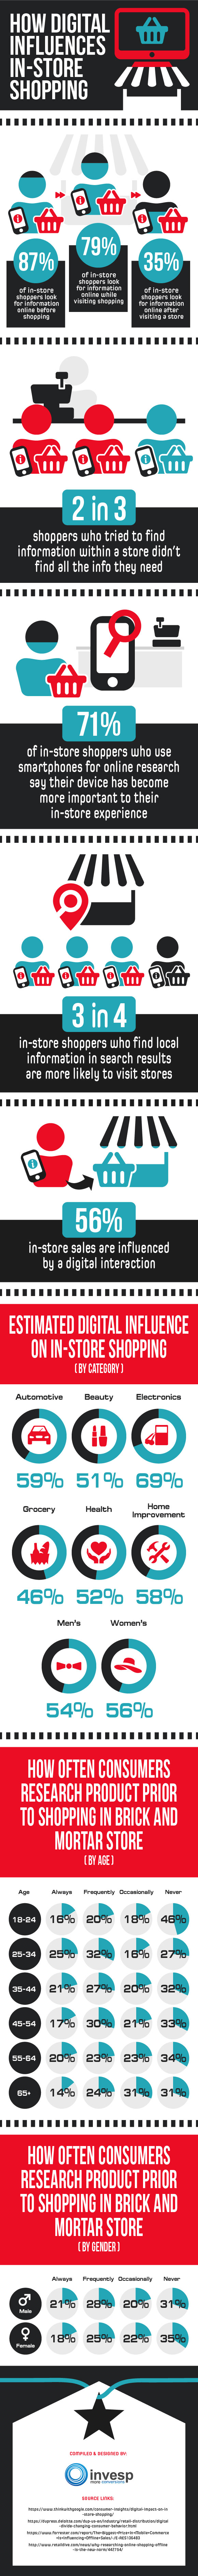 How digital influences in-store shopping